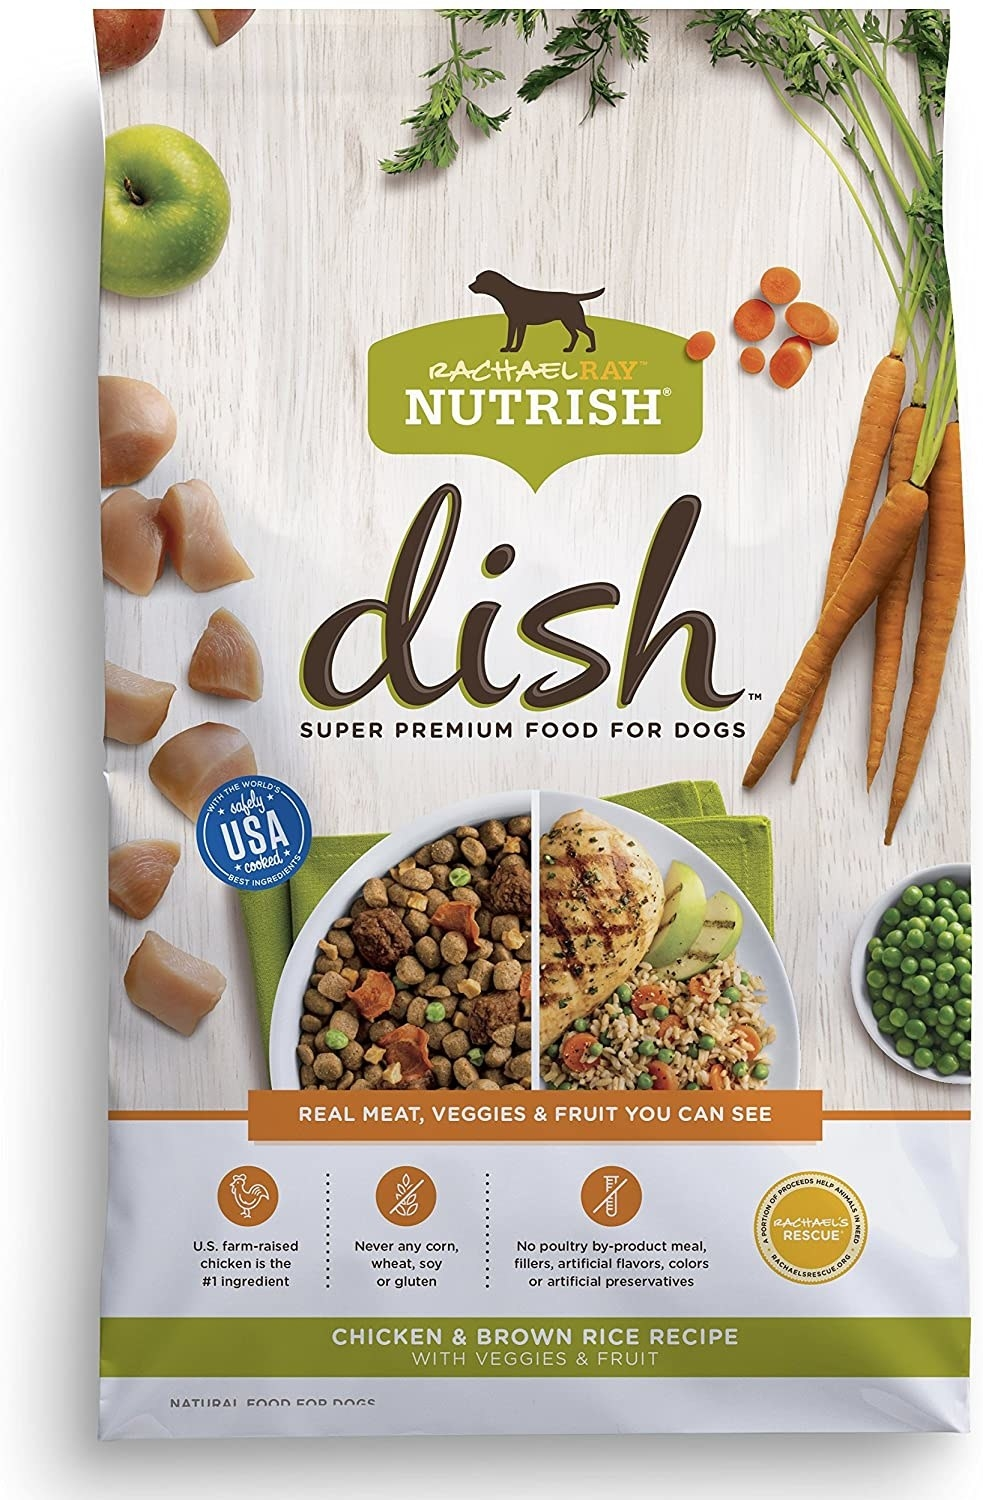 bag of rachael ray nutrish dog food with meat, veggies, and fruit